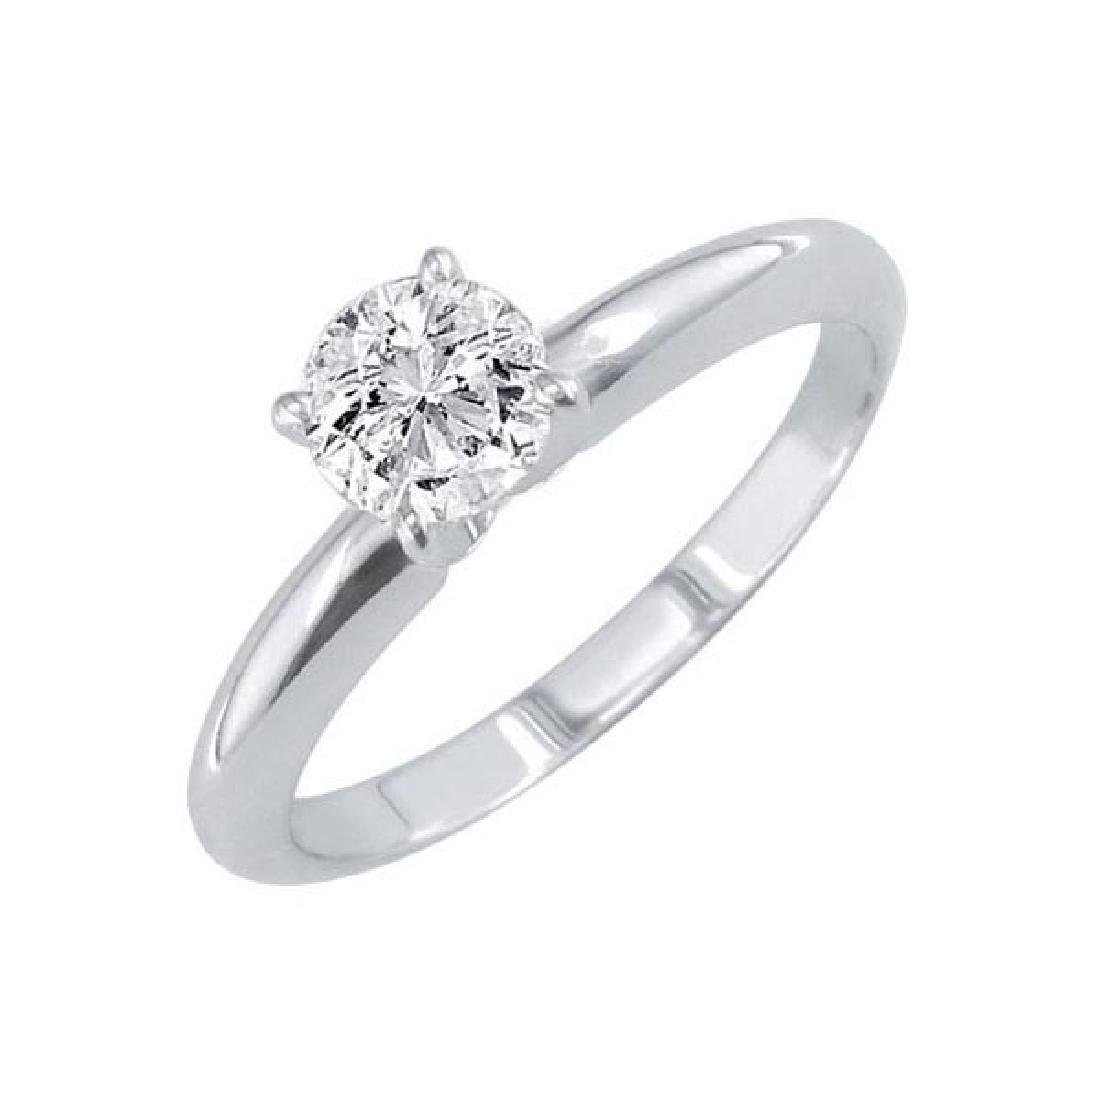 Certified 0.56 CTW Round Diamond Solitaire 14k Ring I/S